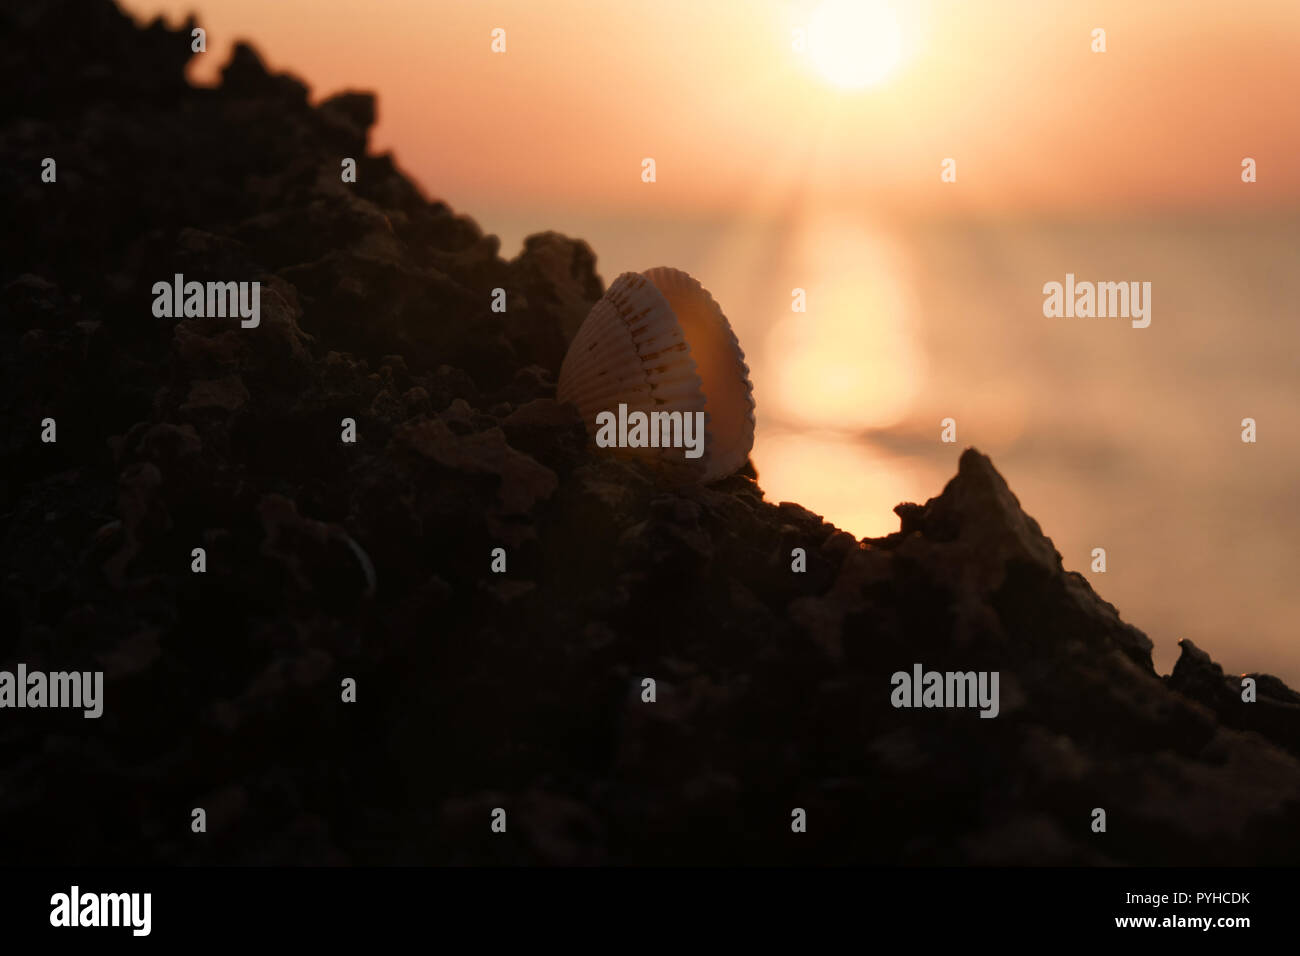 Sea shell with open valves on rock in front of sun setting over the sea - Stock Image